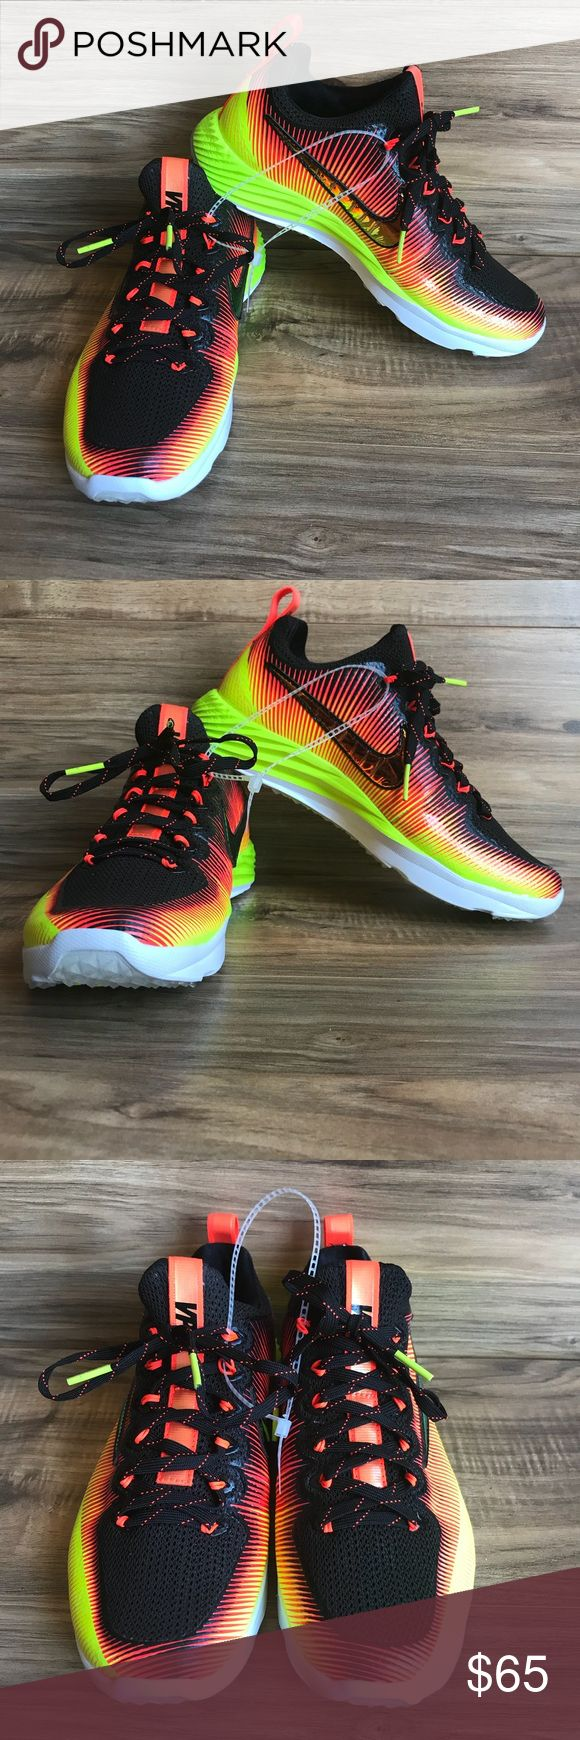 New Nike Vapor Speed Solar Flare Turf Shoe Size 5 New Nike Vapor Speed Solar Flare Turf Shoe Size 5  850673-798  Turf football; lacrosse shoe; New without box; these were a display model and have been tried on  Smoke and pet free home Nike Shoes Sneakers